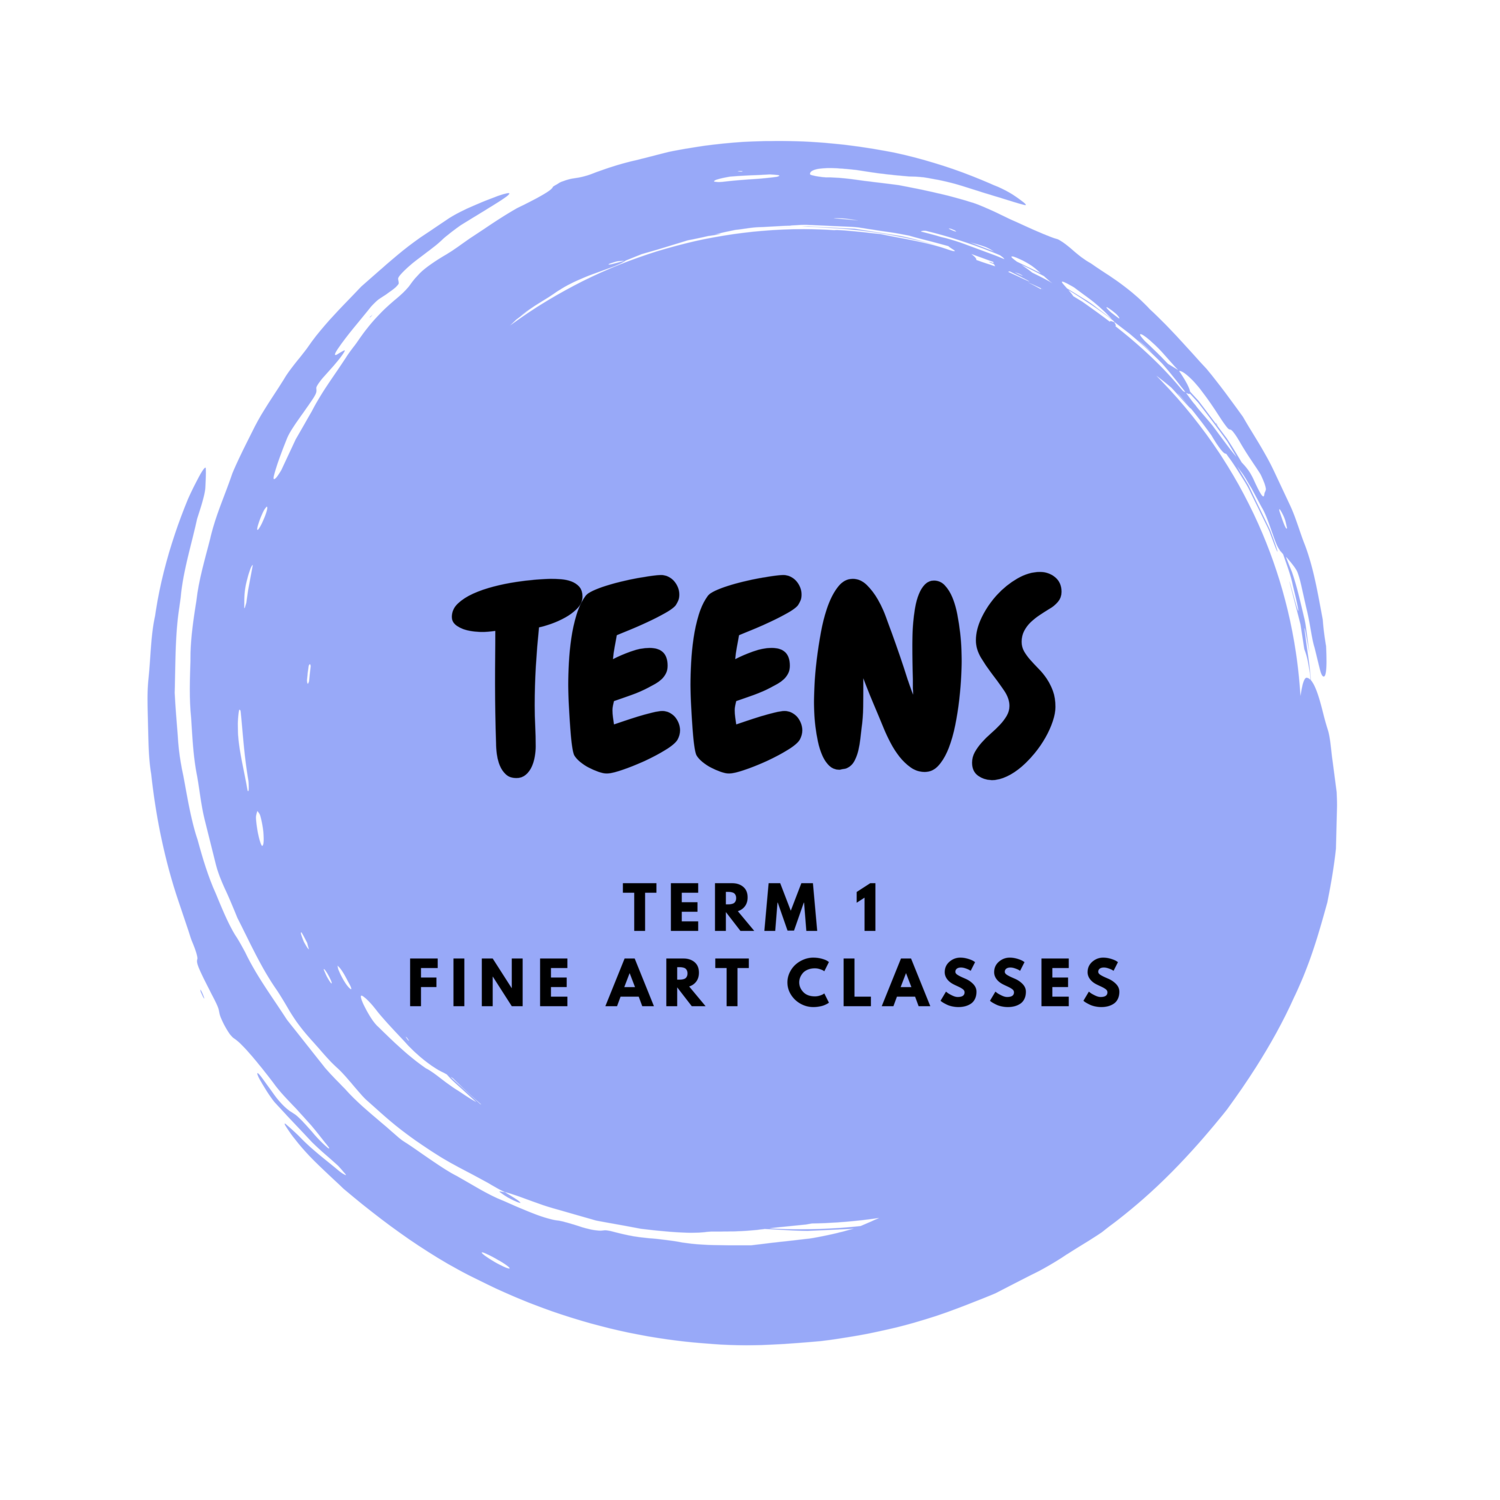 Teens Term 1 Fine Art Classes